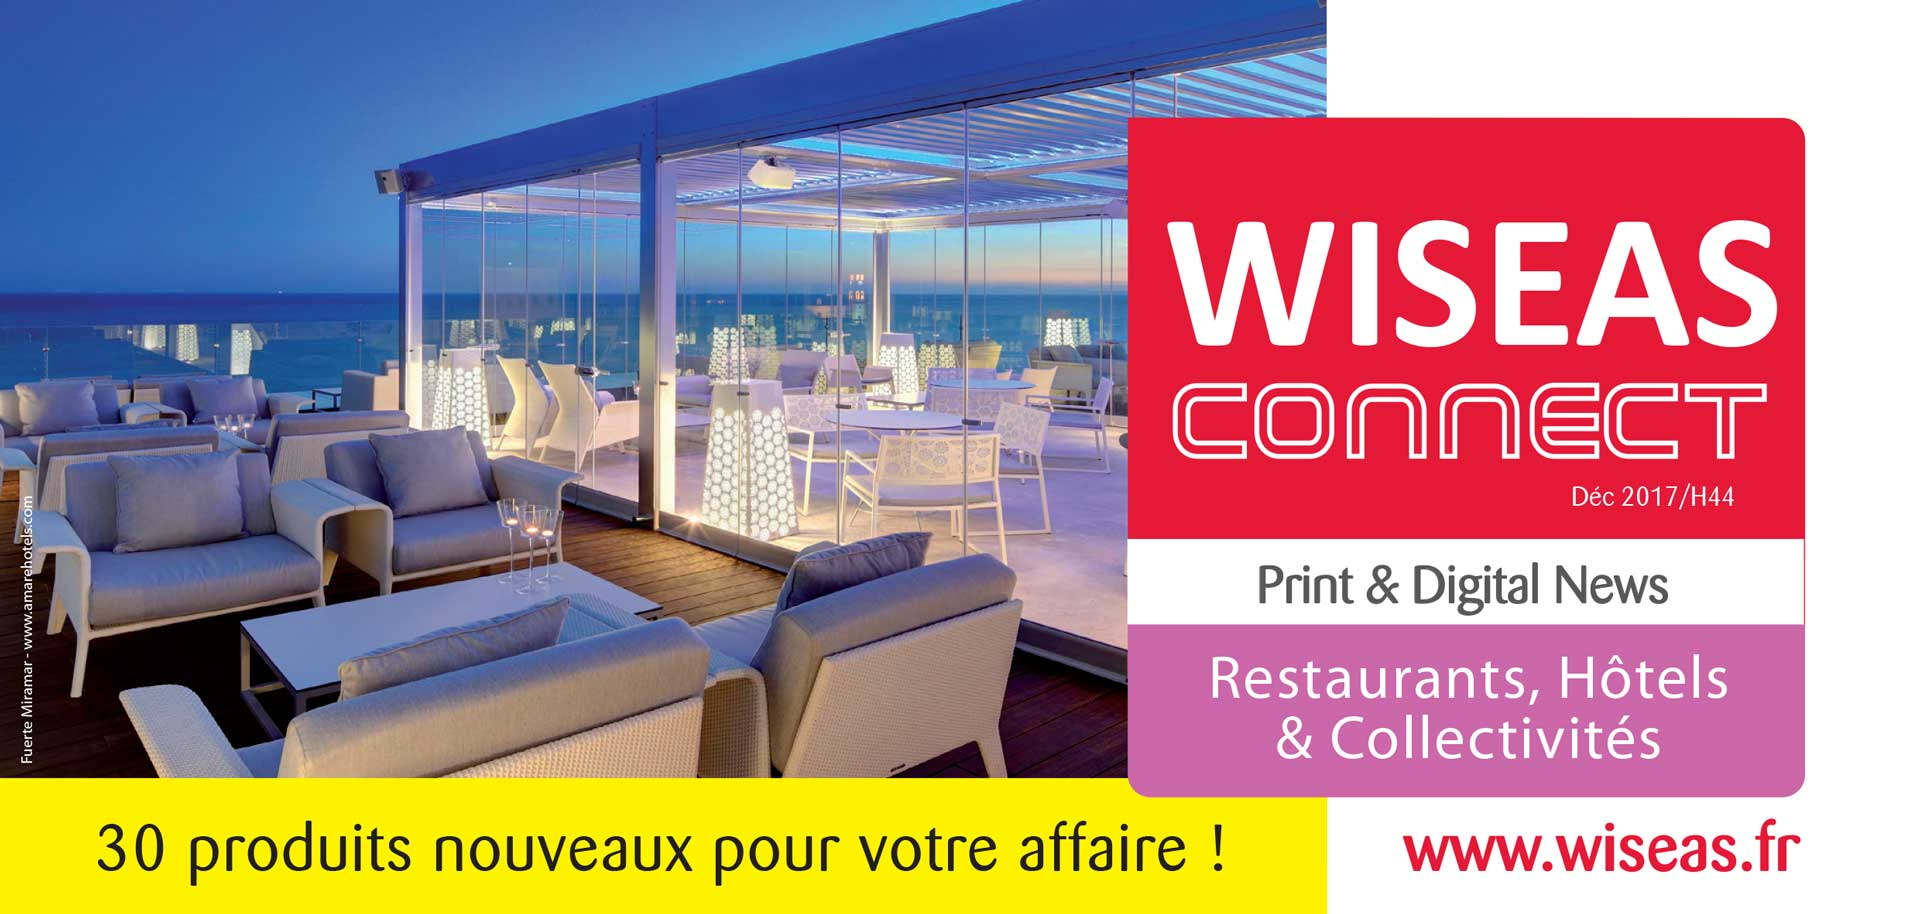 Le carnet wiseas dition restaurants h tels for Equipement traiteur restauration